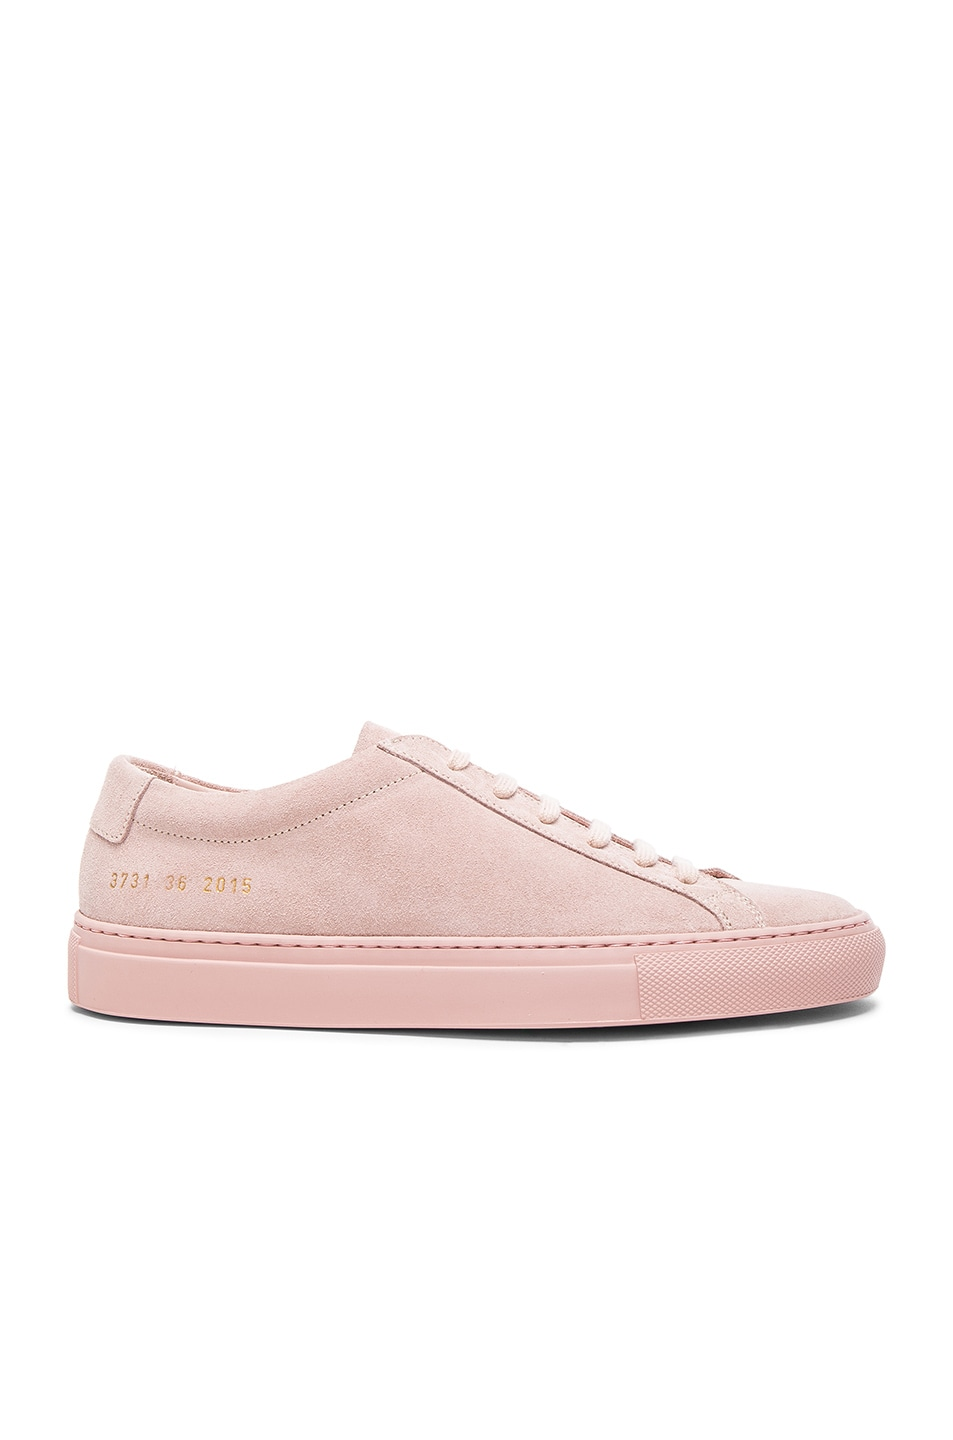 Image 1 of Common Projects Leather Original Achilles Low Suede in Blush